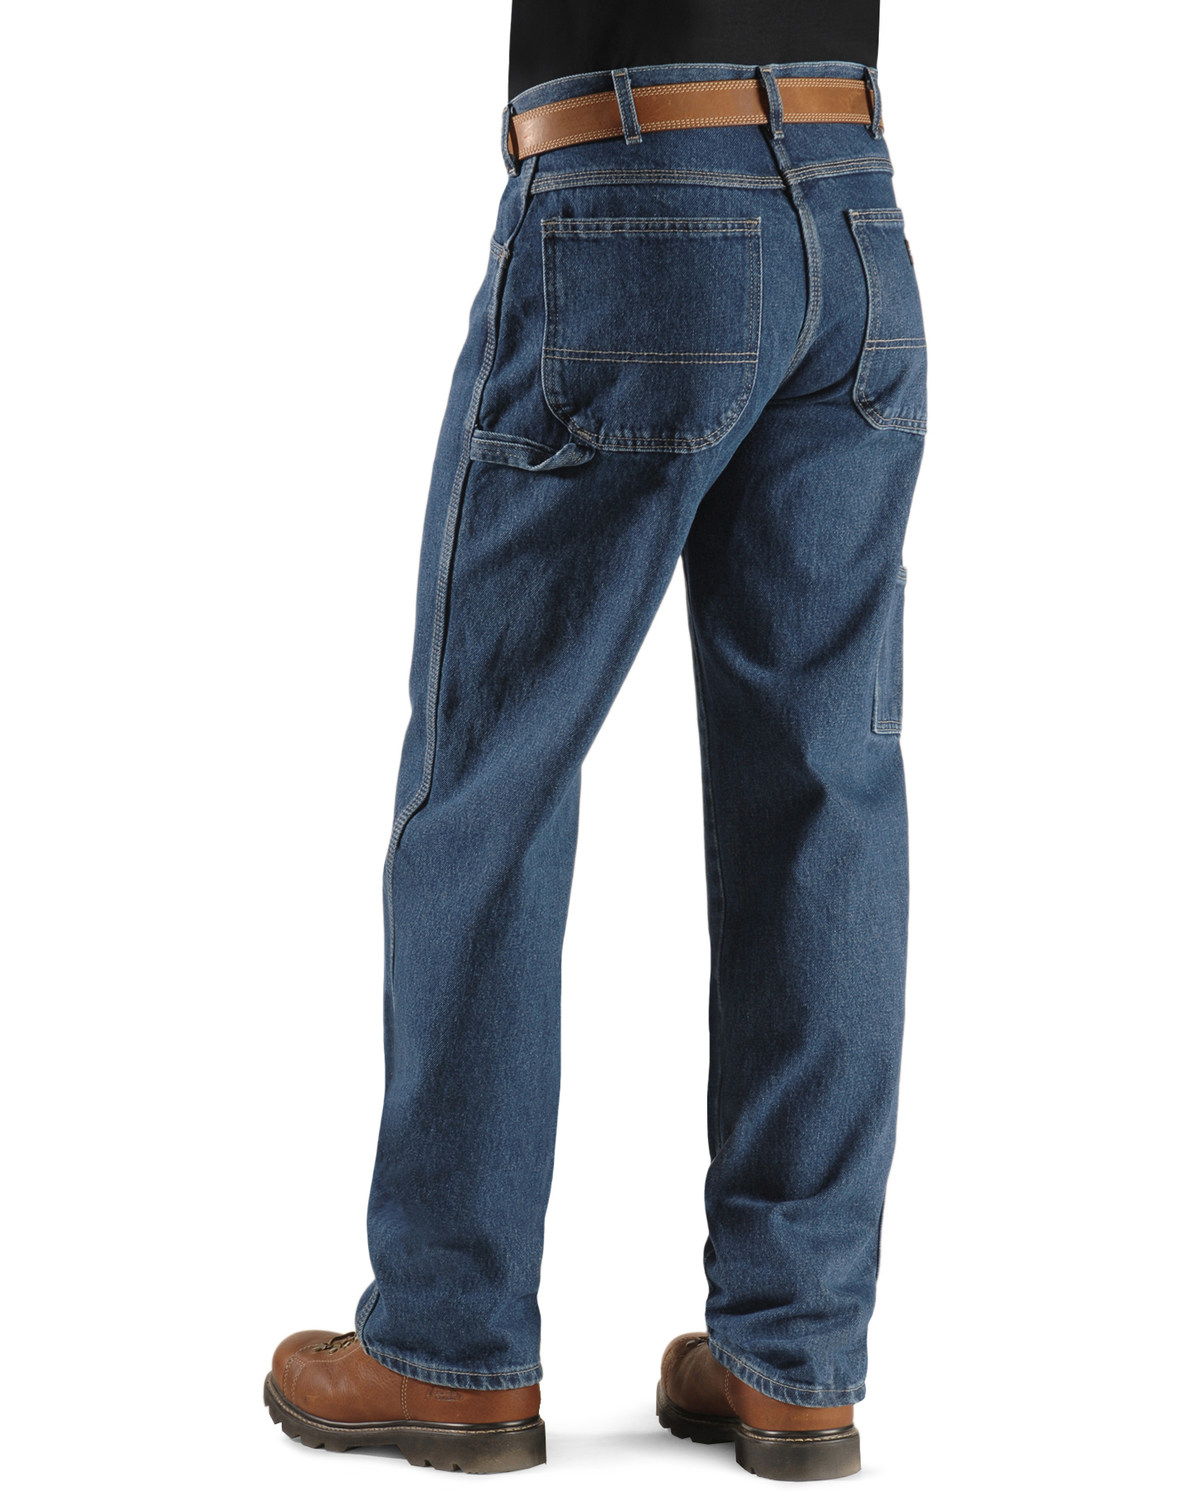 6f1aa6b8 Zoomed Image Dickies Relaxed Fit Carpenter Work Jeans, Denim, hi-res. Zoomed  Image ...